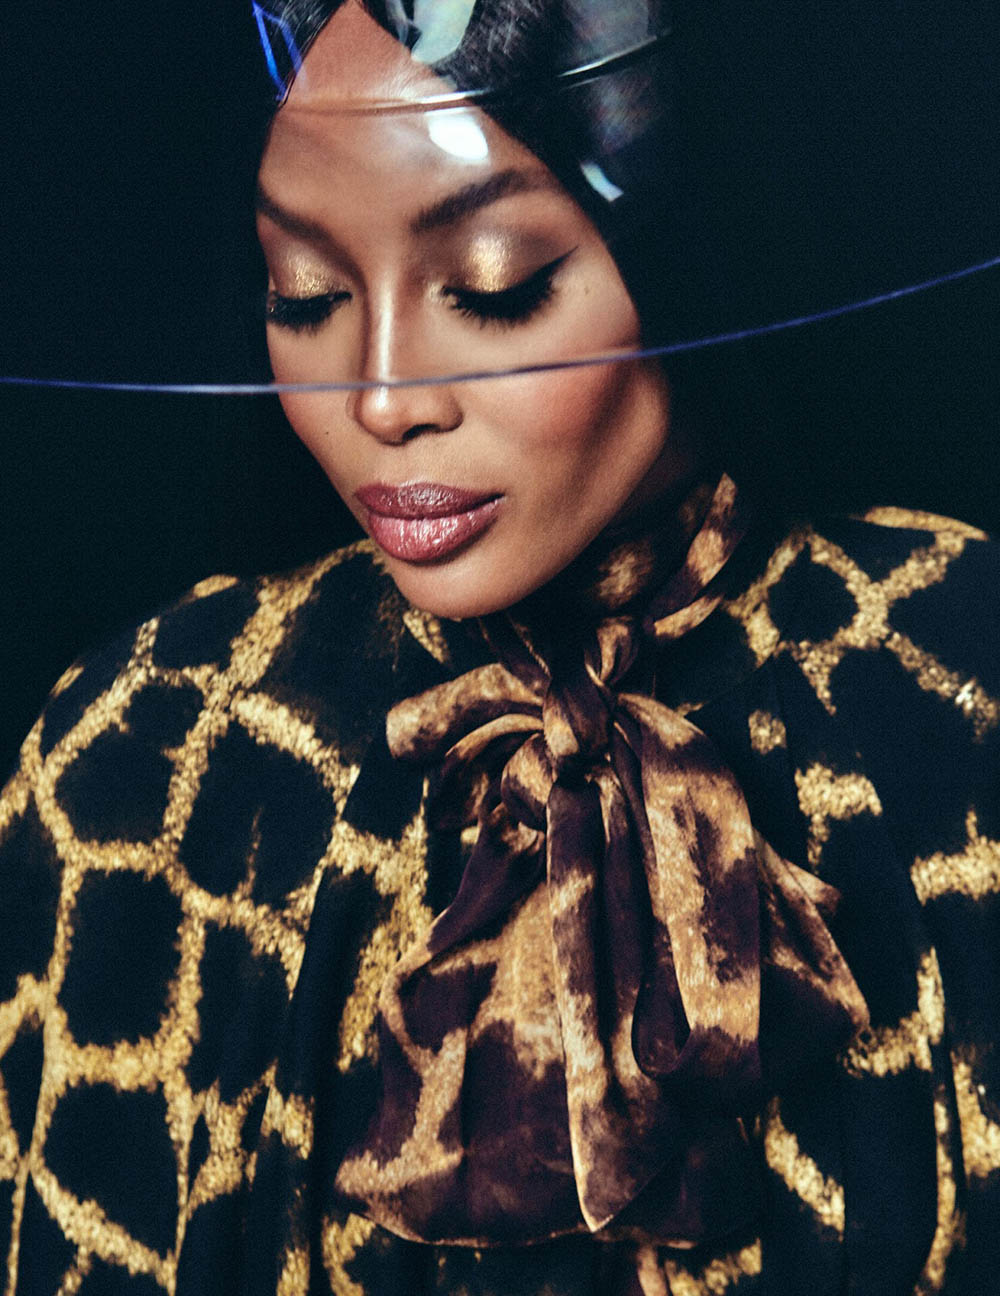 Naomi Campbell covers Vogue Arabia November 2018 by Chris Colls